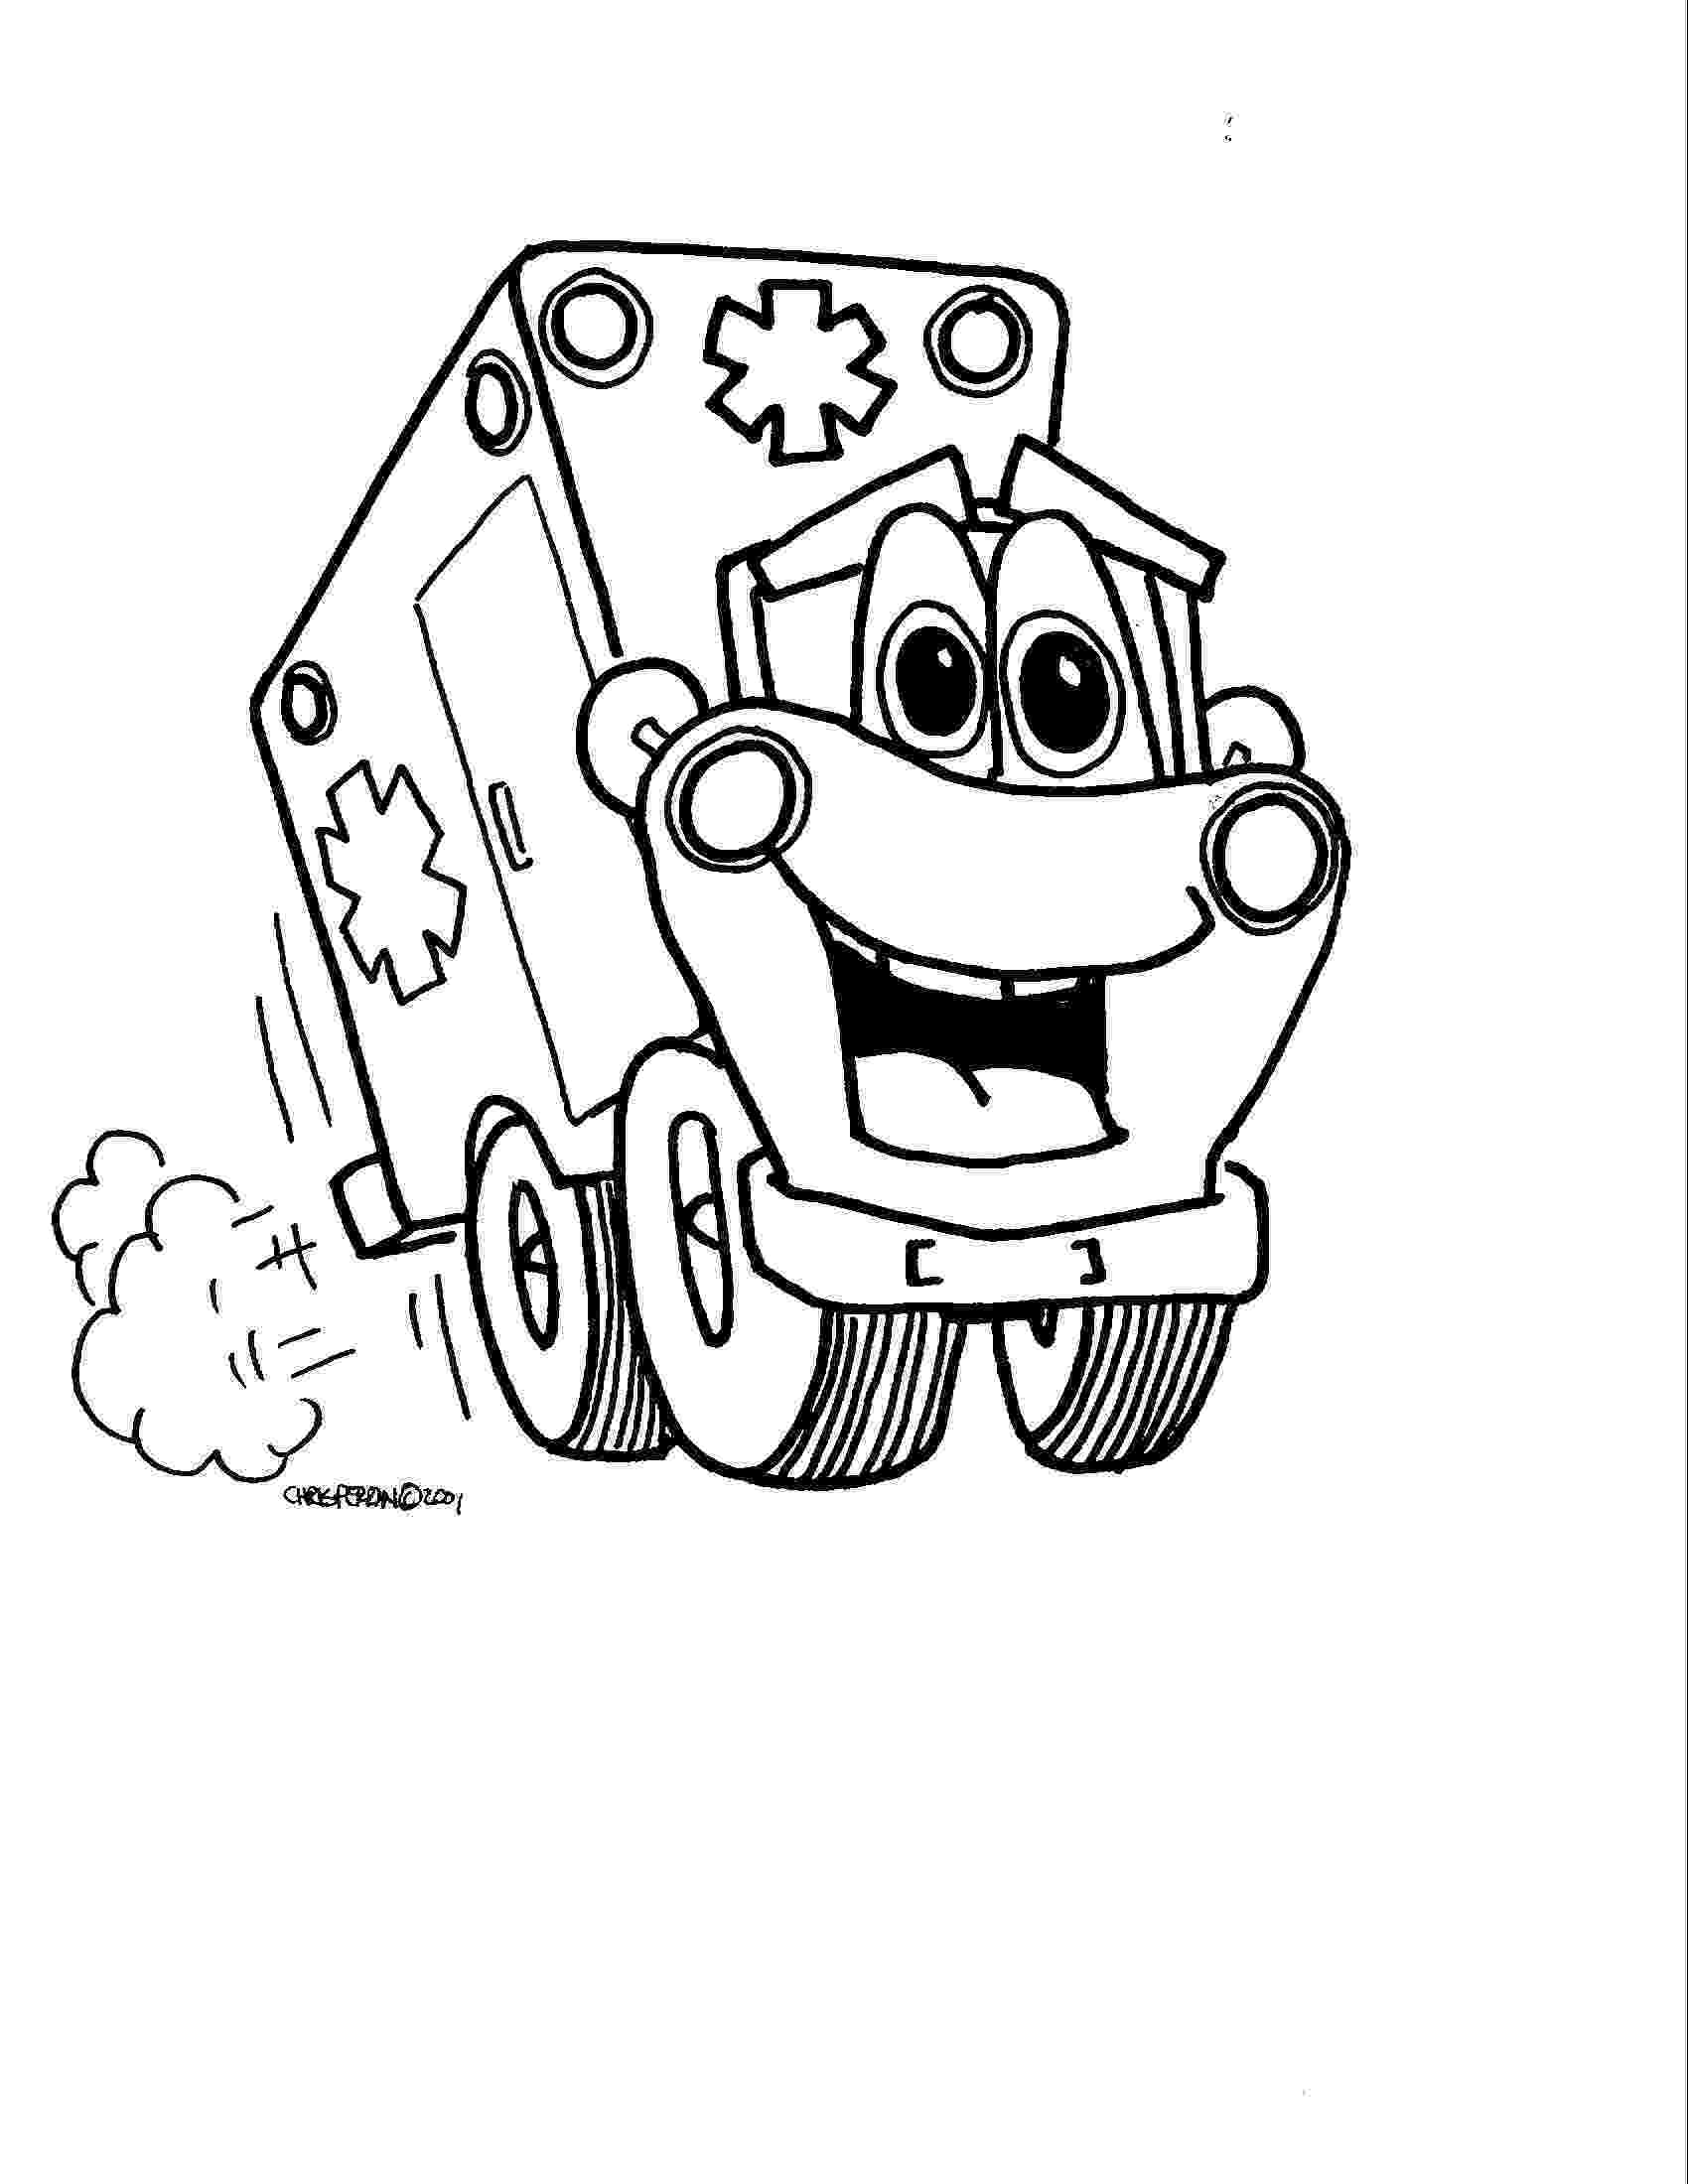 ambulance colouring pages ambulance coloring pages free printable for primaryschool colouring pages ambulance